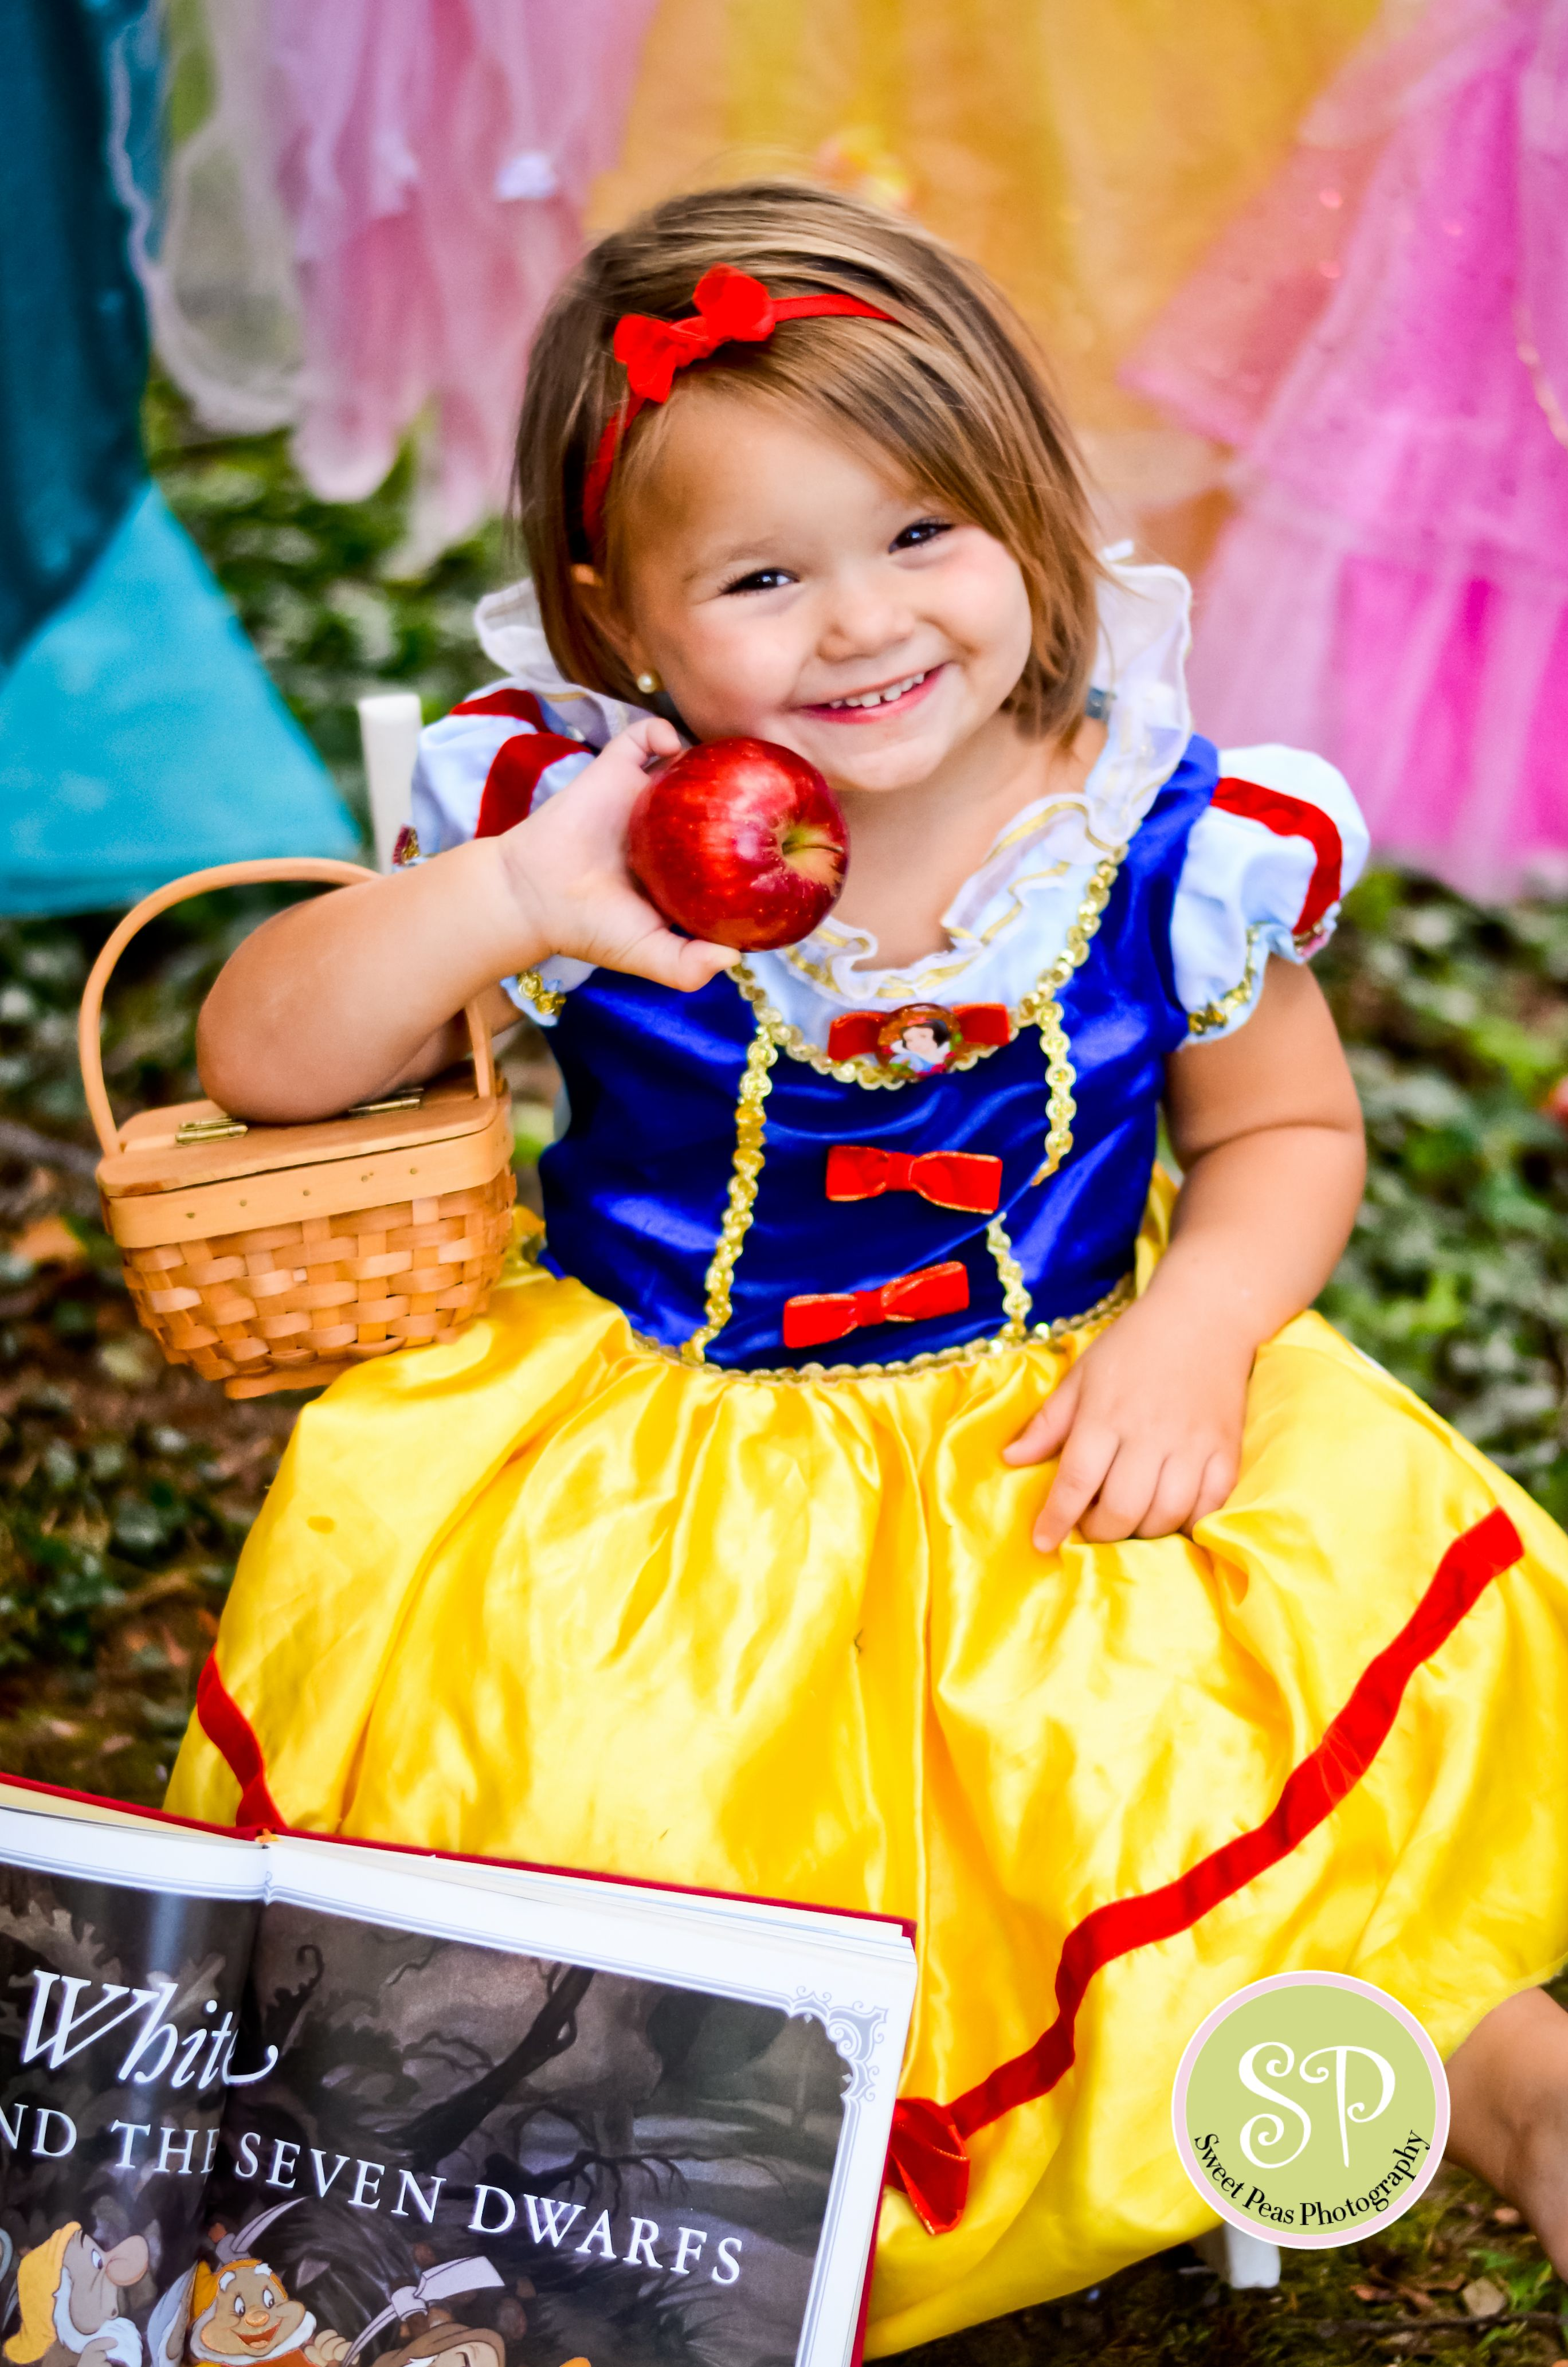 No Doubt In My Mind This Will Be My Daughter Princess Photo